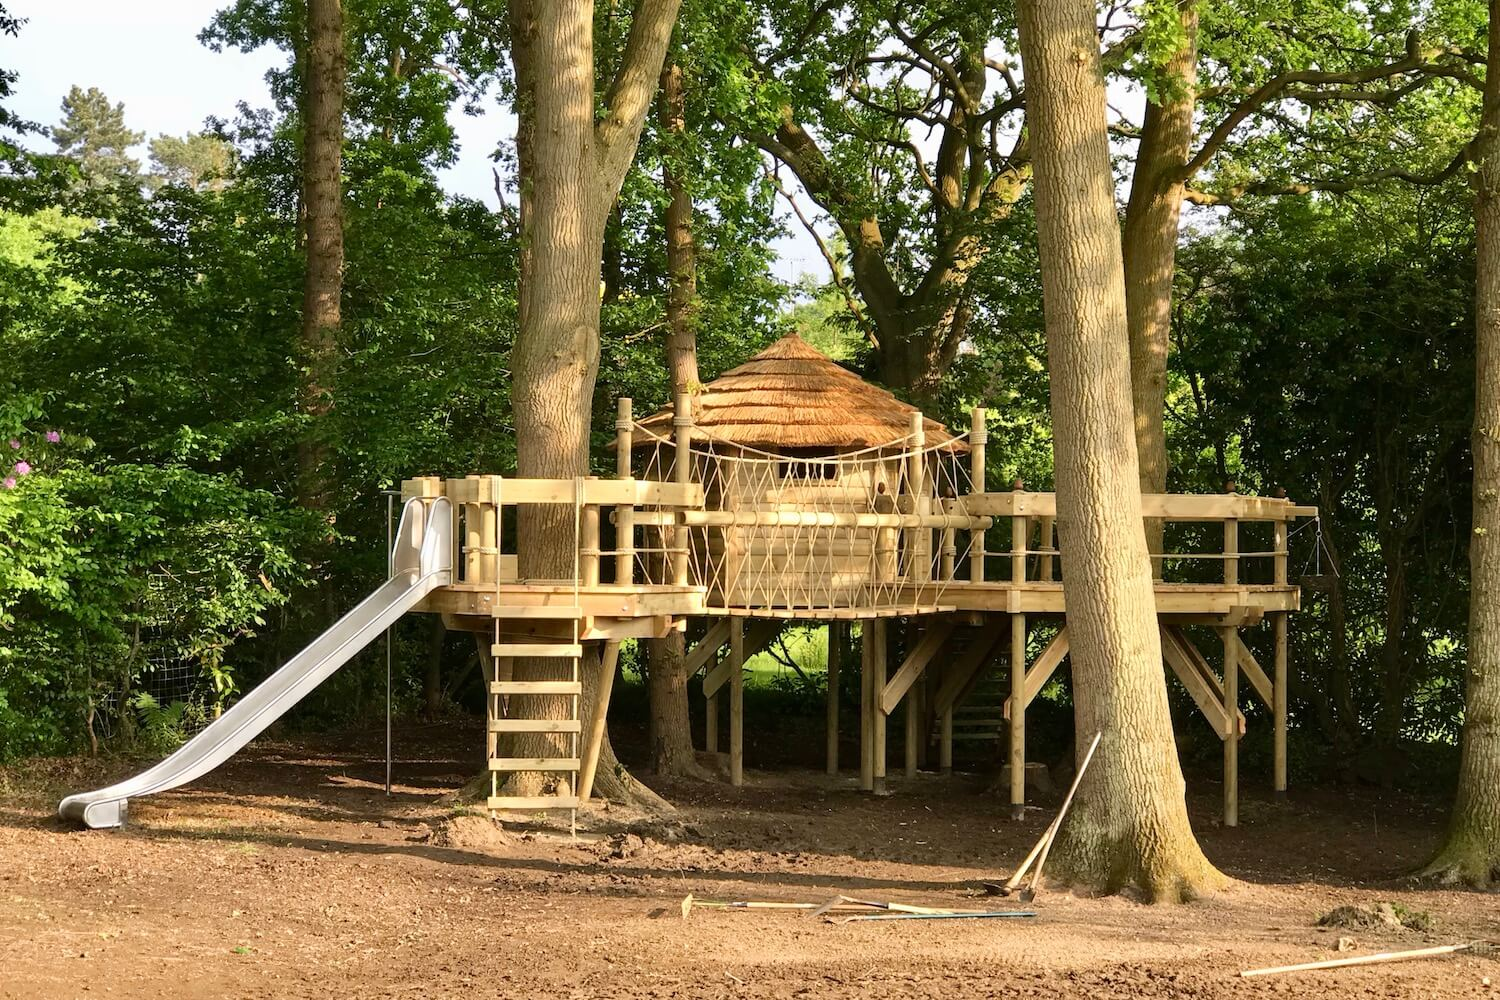 'School' tree houses